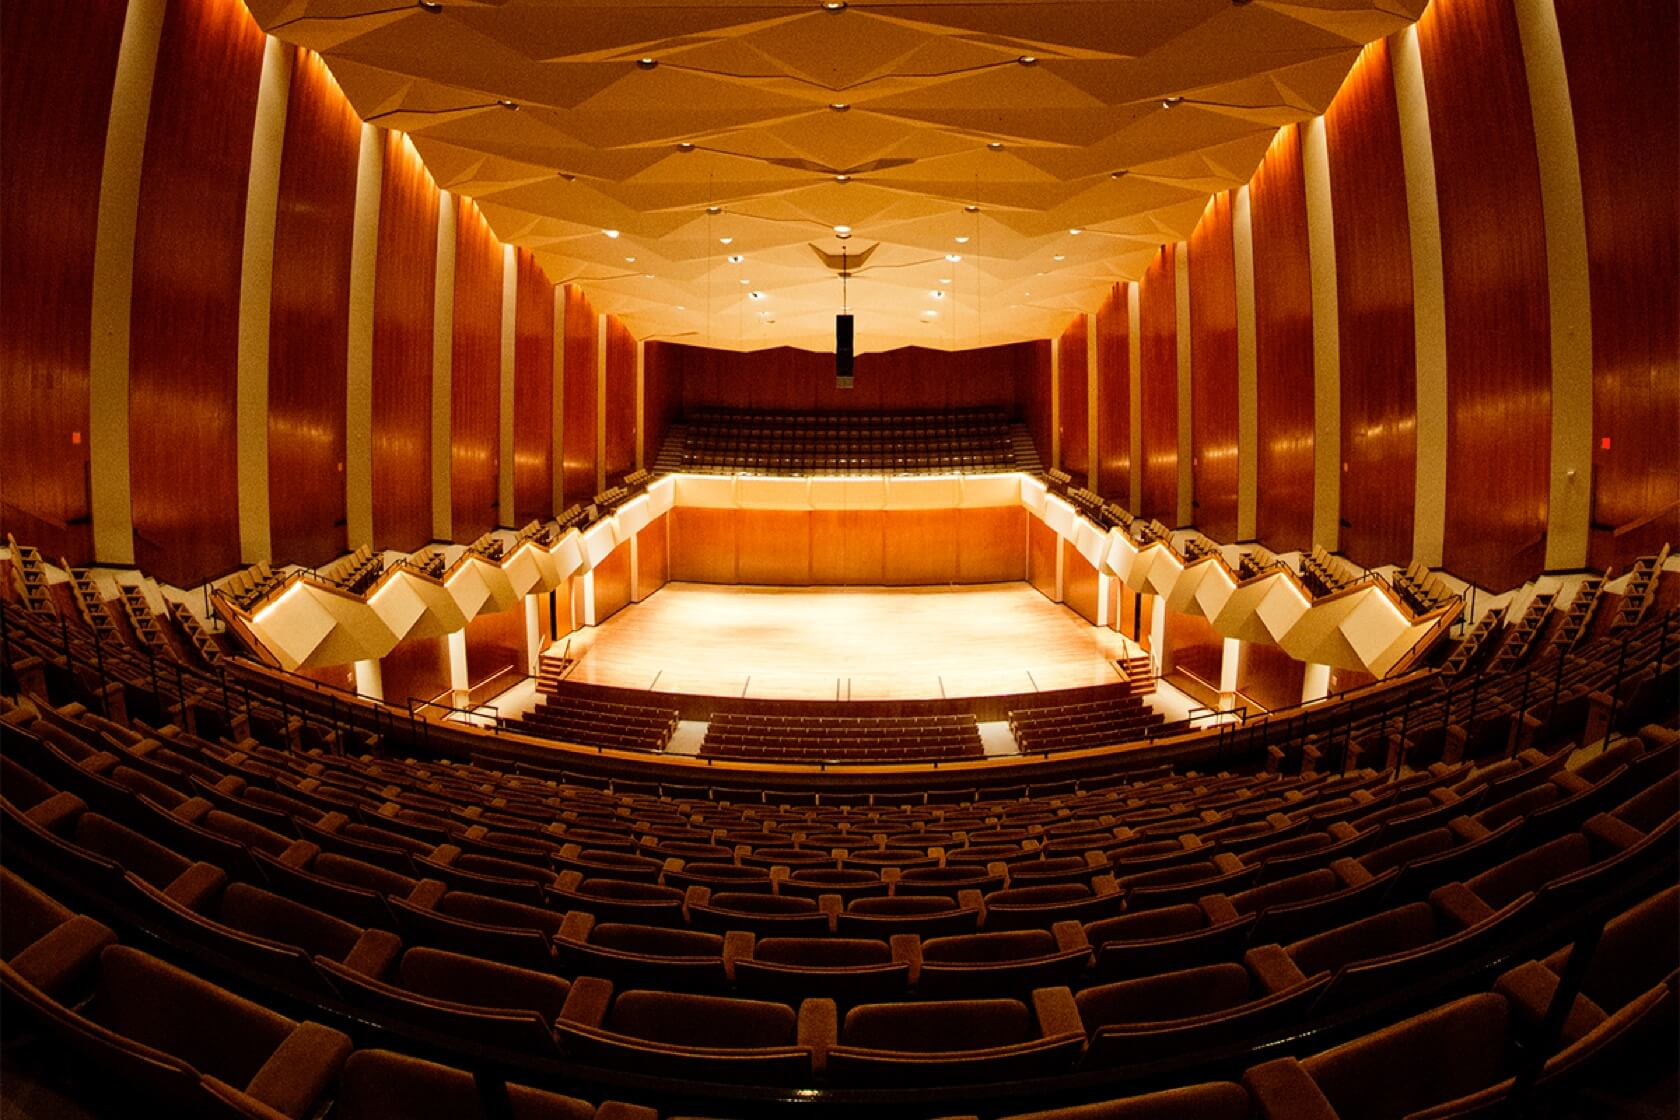 Interior of Krannert Theater for the Performing Arts